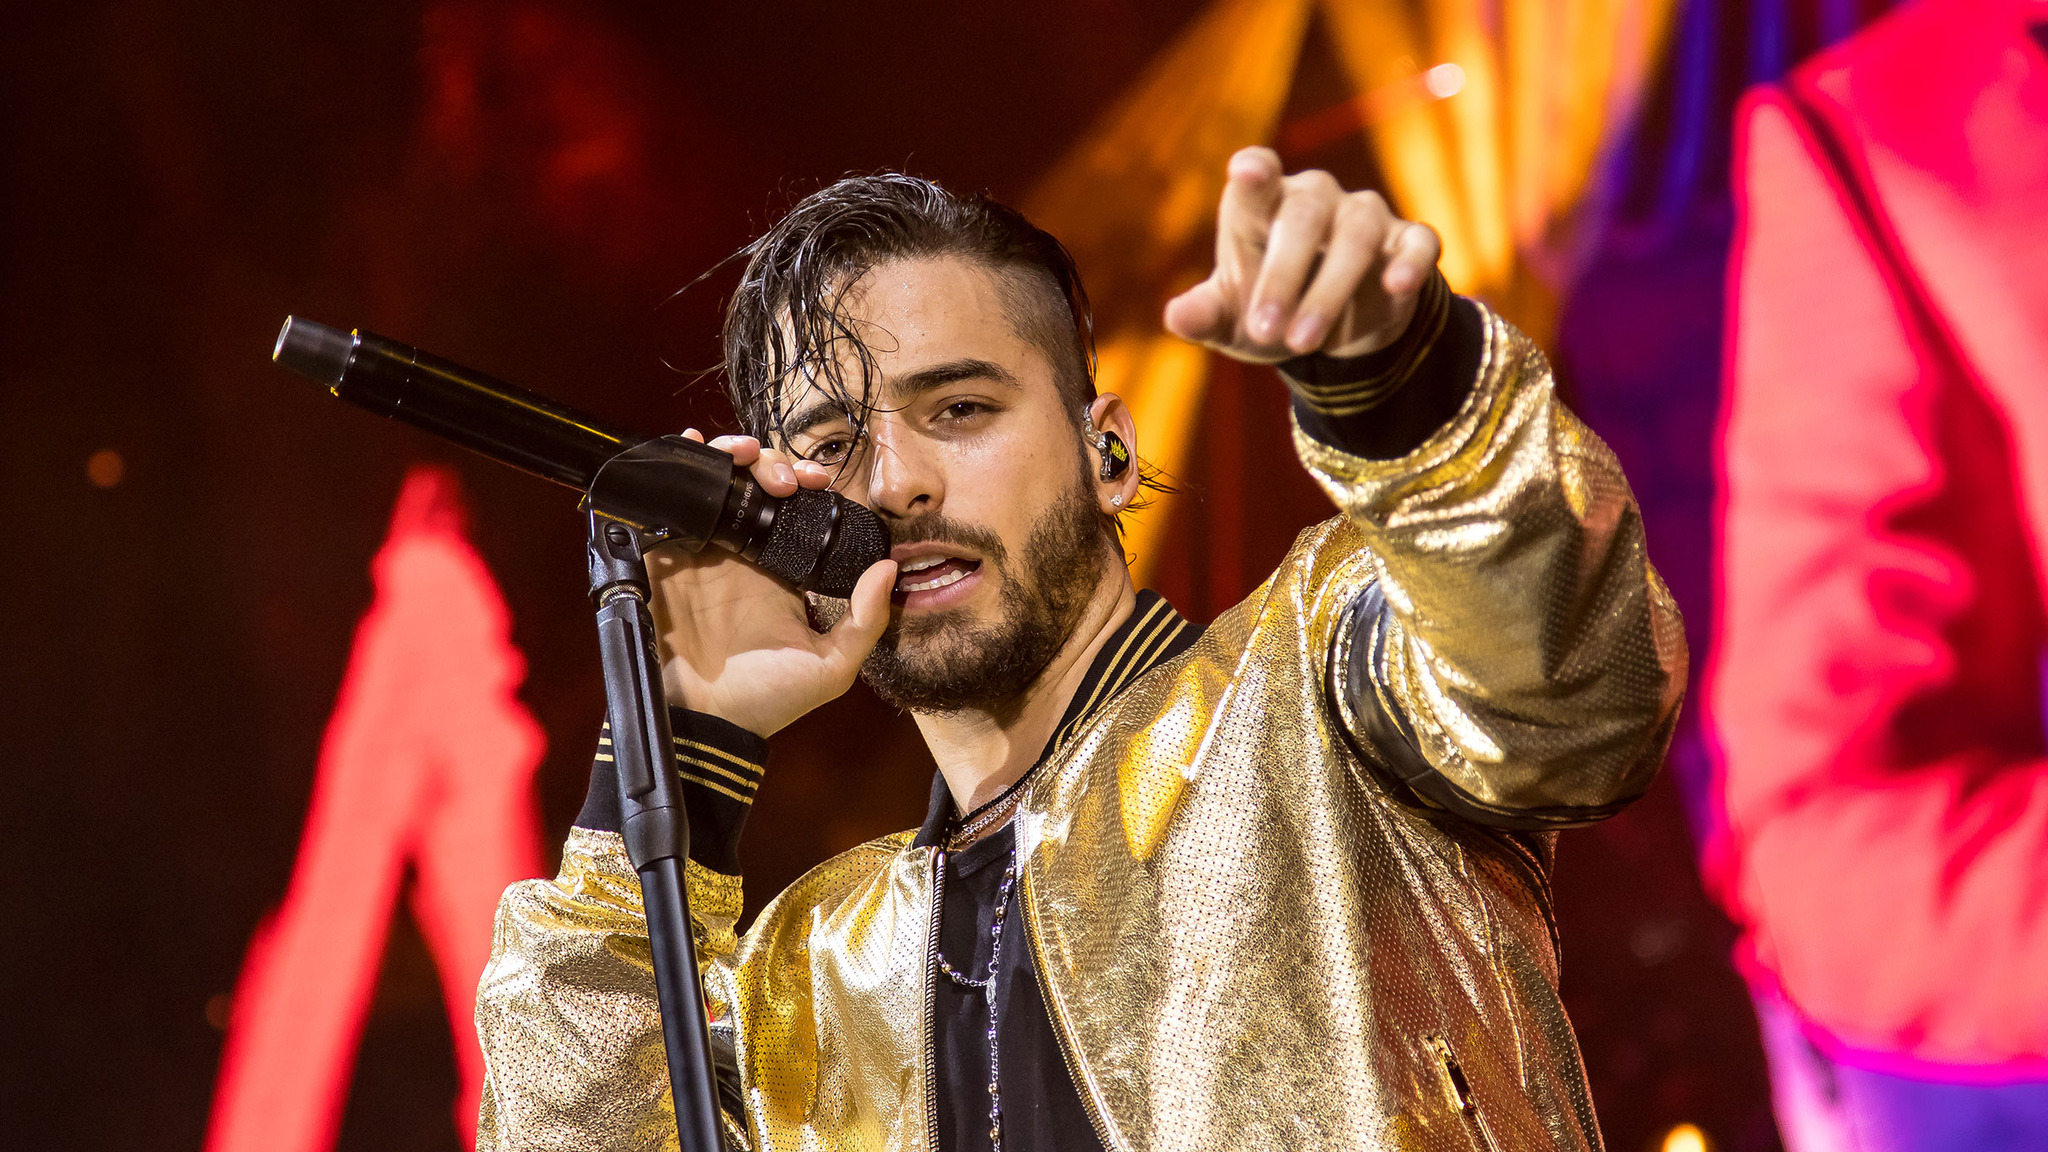 Maluma 2018 & Maluma 2019 Theme & Maluma 2018 Concert Background HD